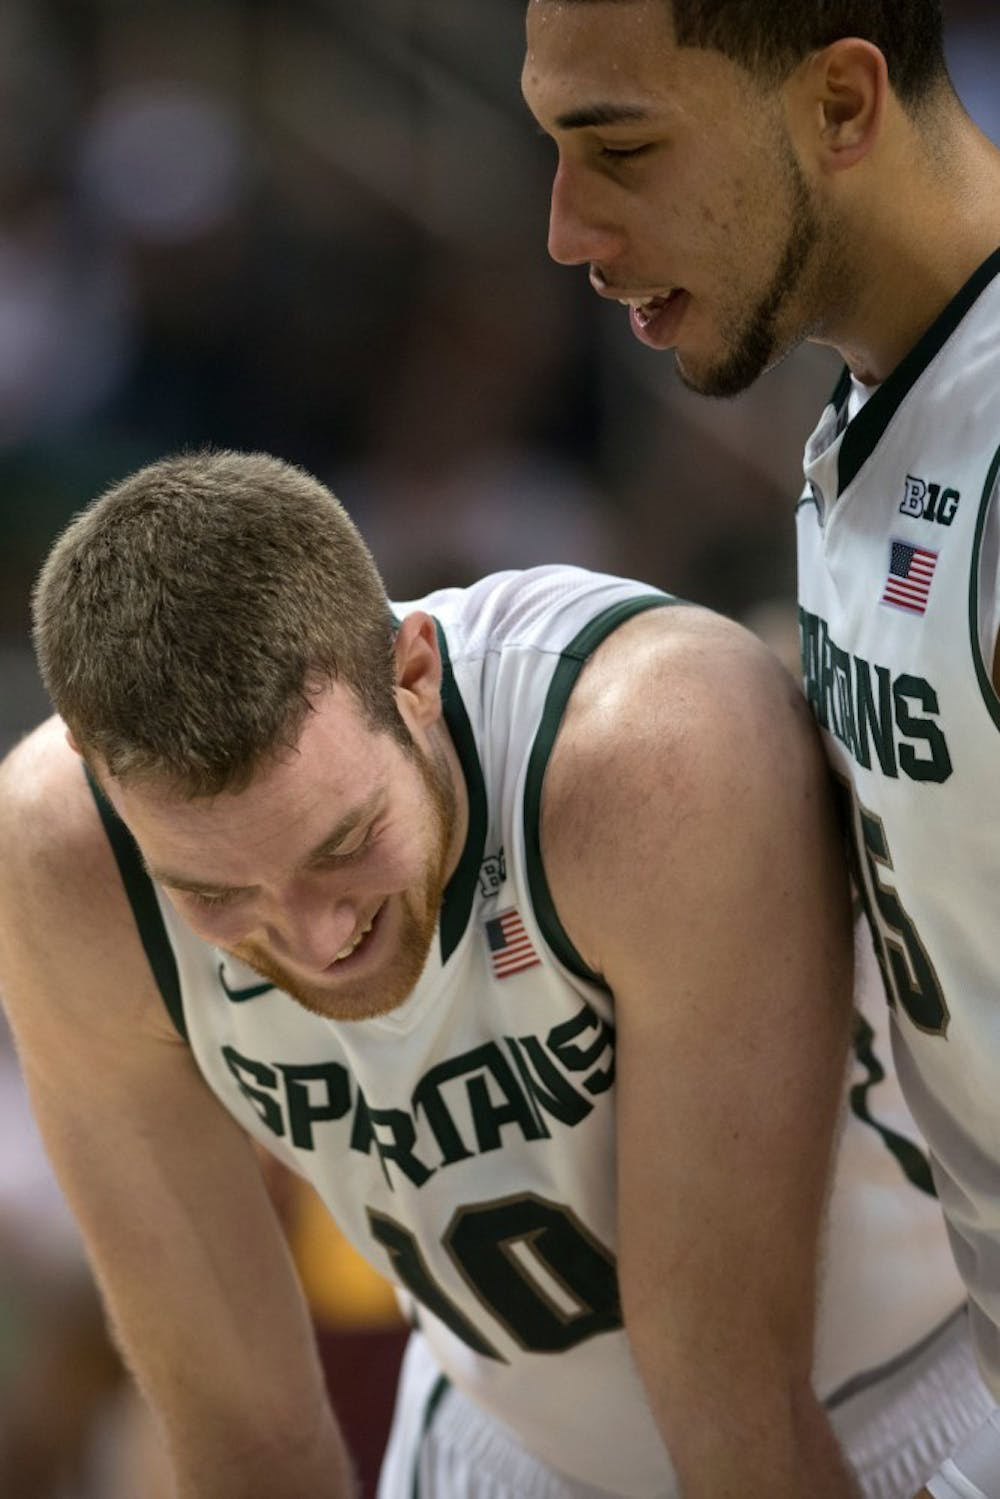 Sophomore forward Matt Costello and sophomore guard Denzel Valentine share a laugh Jan. 11, 2014, at Breslin Center during the game against Minnesota. The Spartans defeated the Gophers in overtime, 87-75. Julia Nagy/The State News